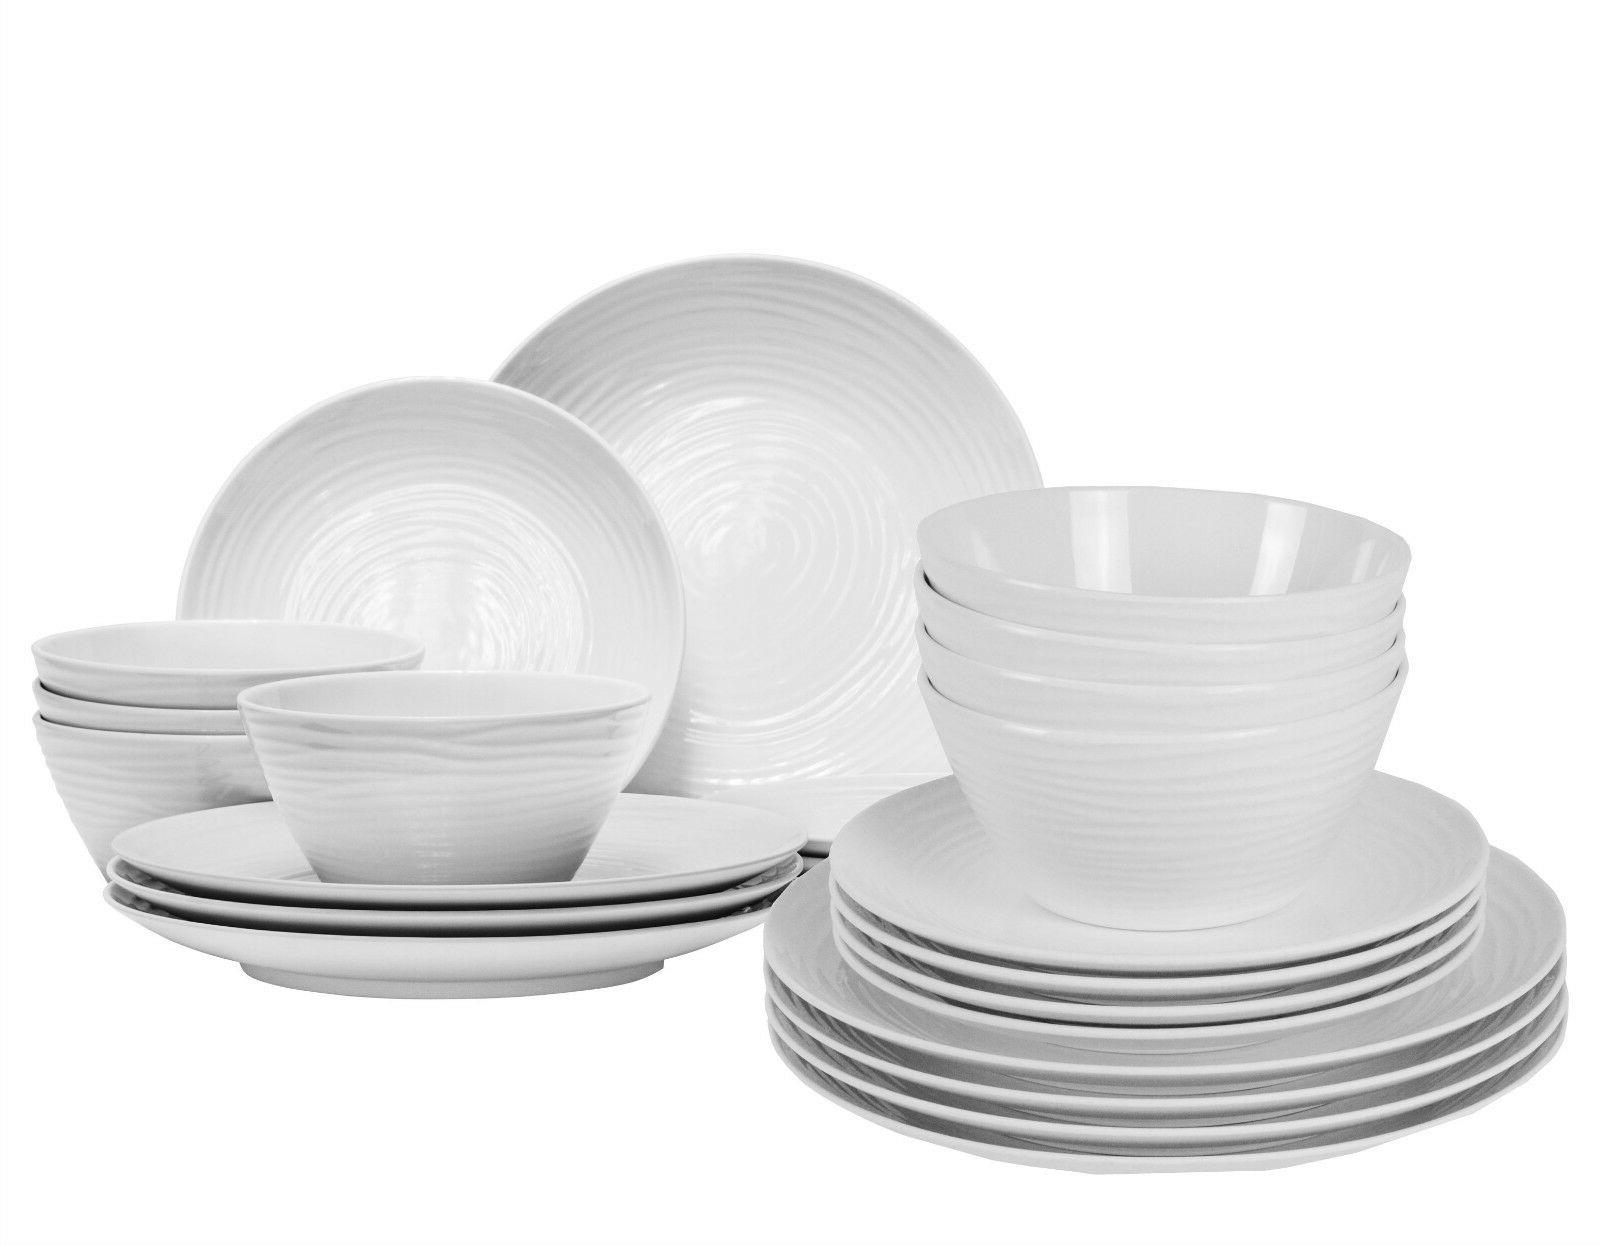 Parhoma 24 Modern White Melamine Dinnerware Set 8 People